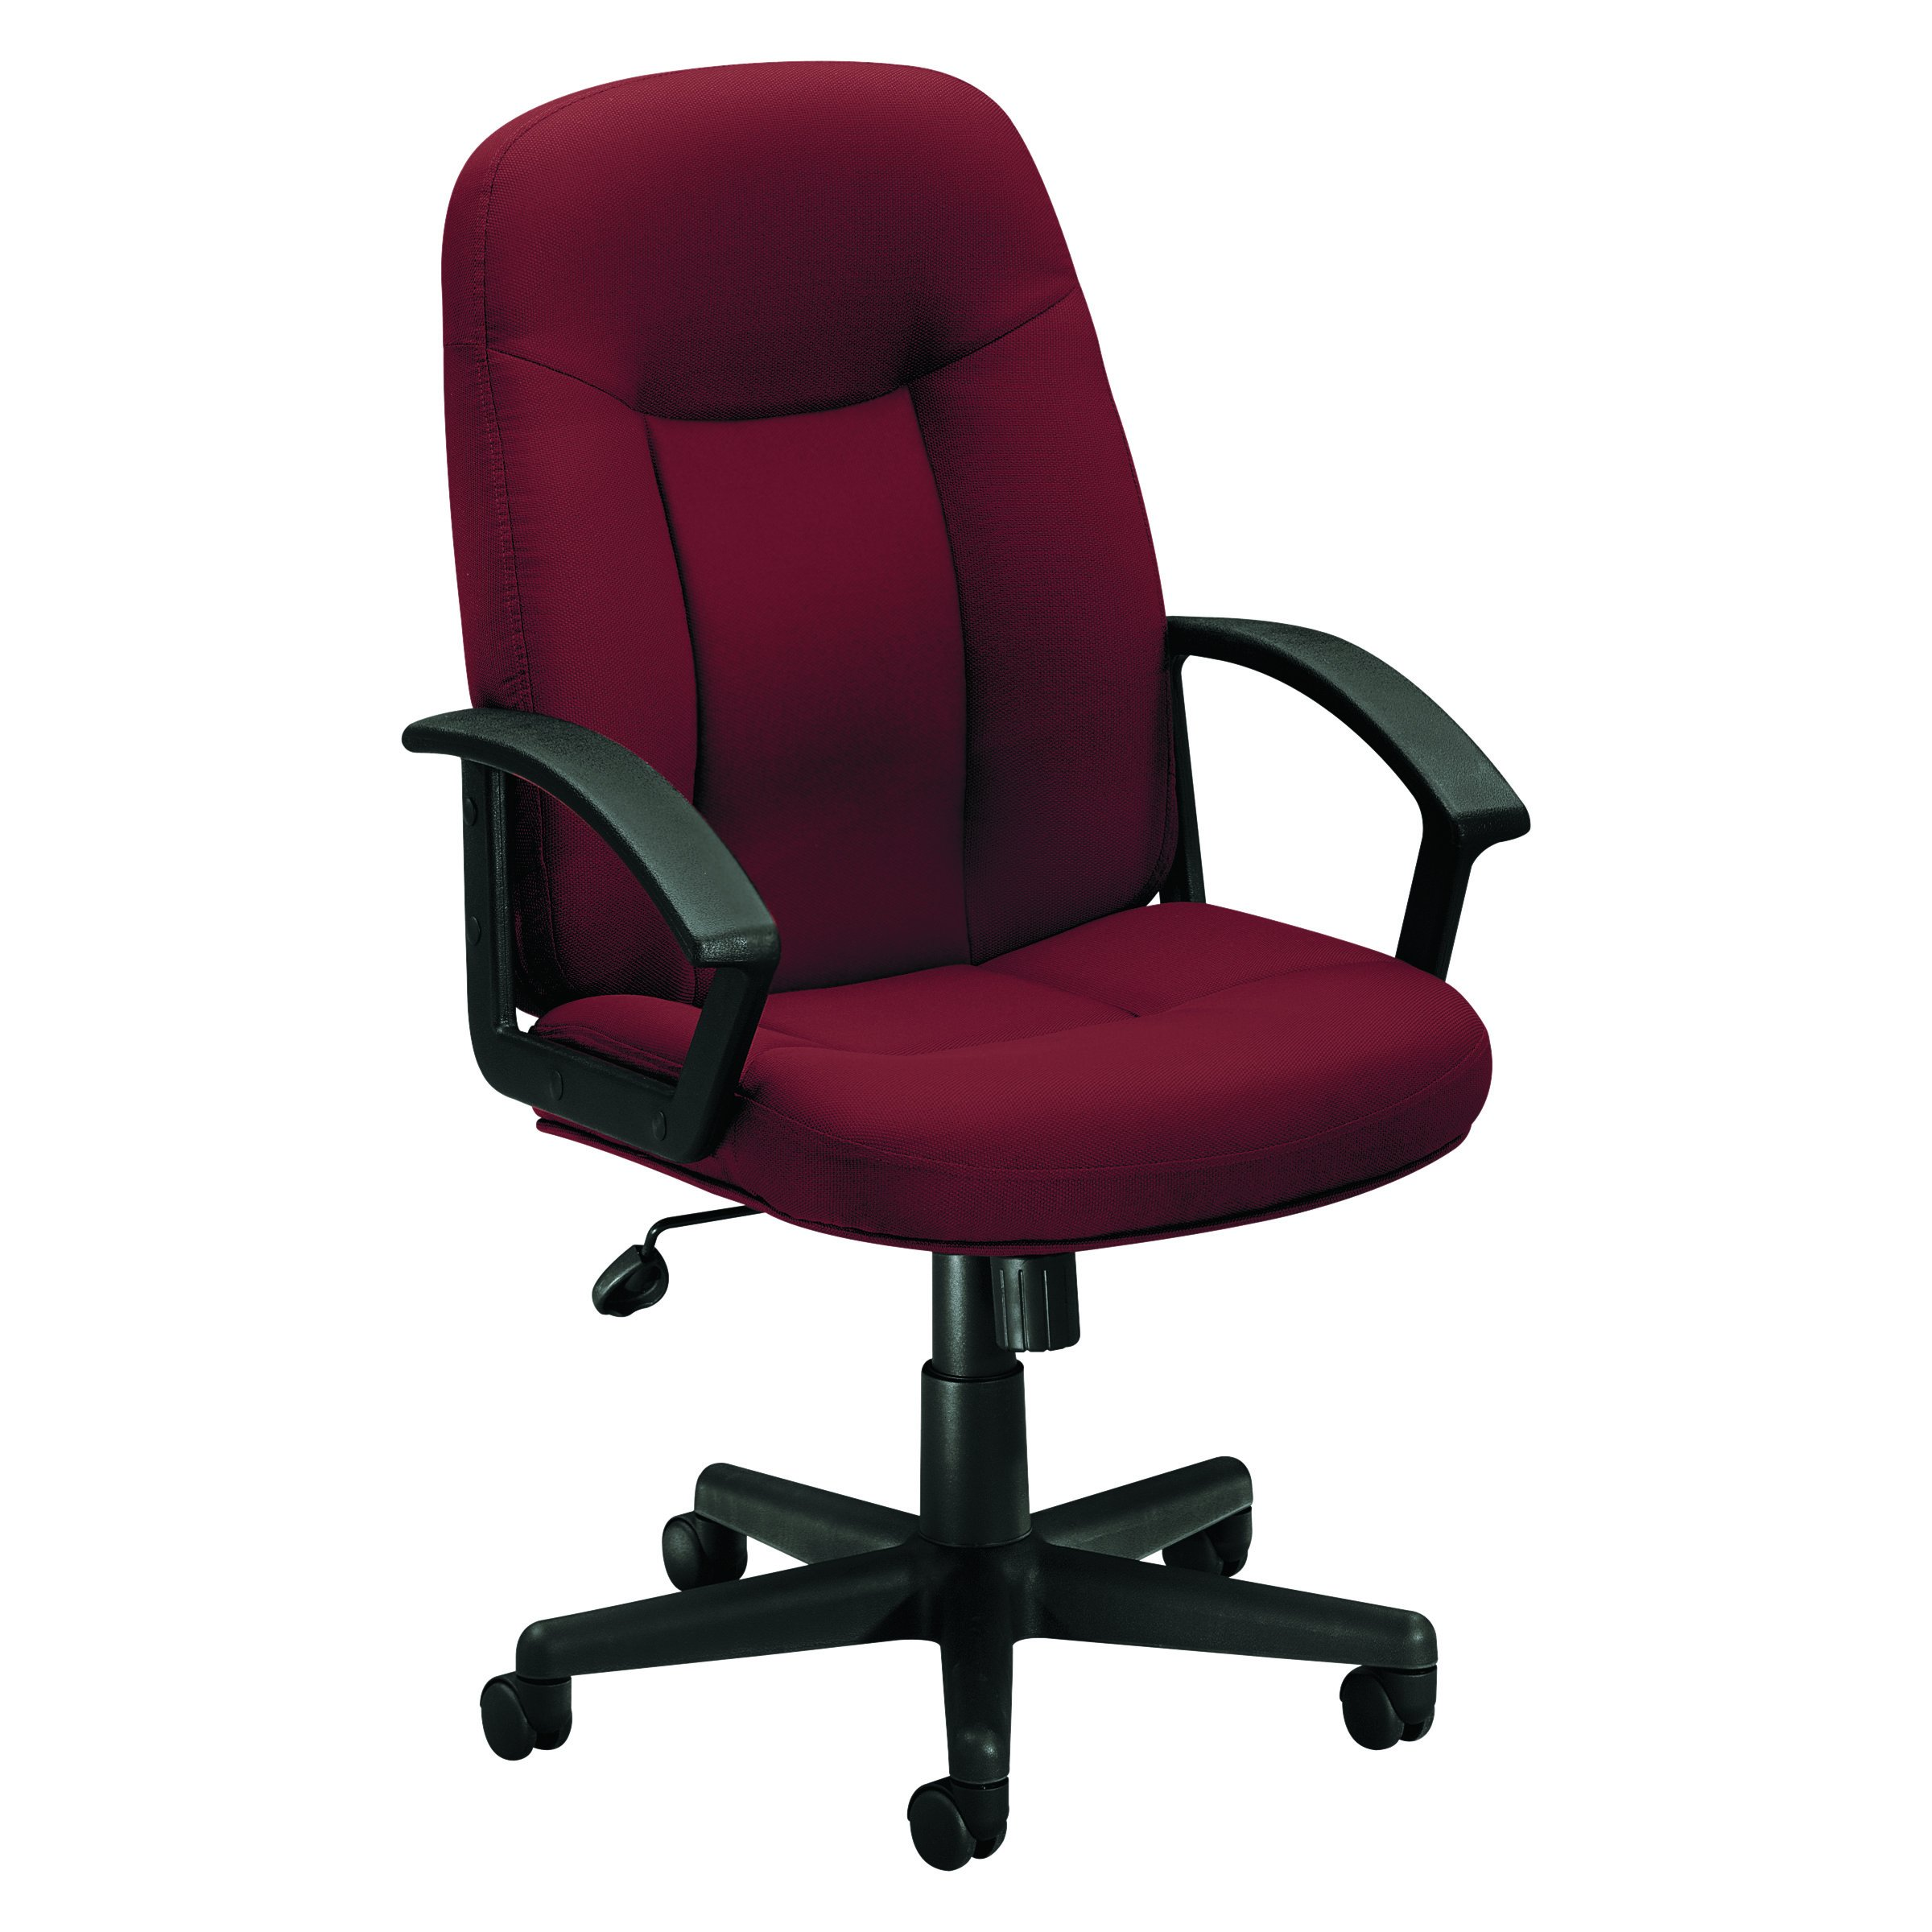 HON Mid-Back Chair with Loop Arms for Office or Computer Desk, Burgundy (HVL601)